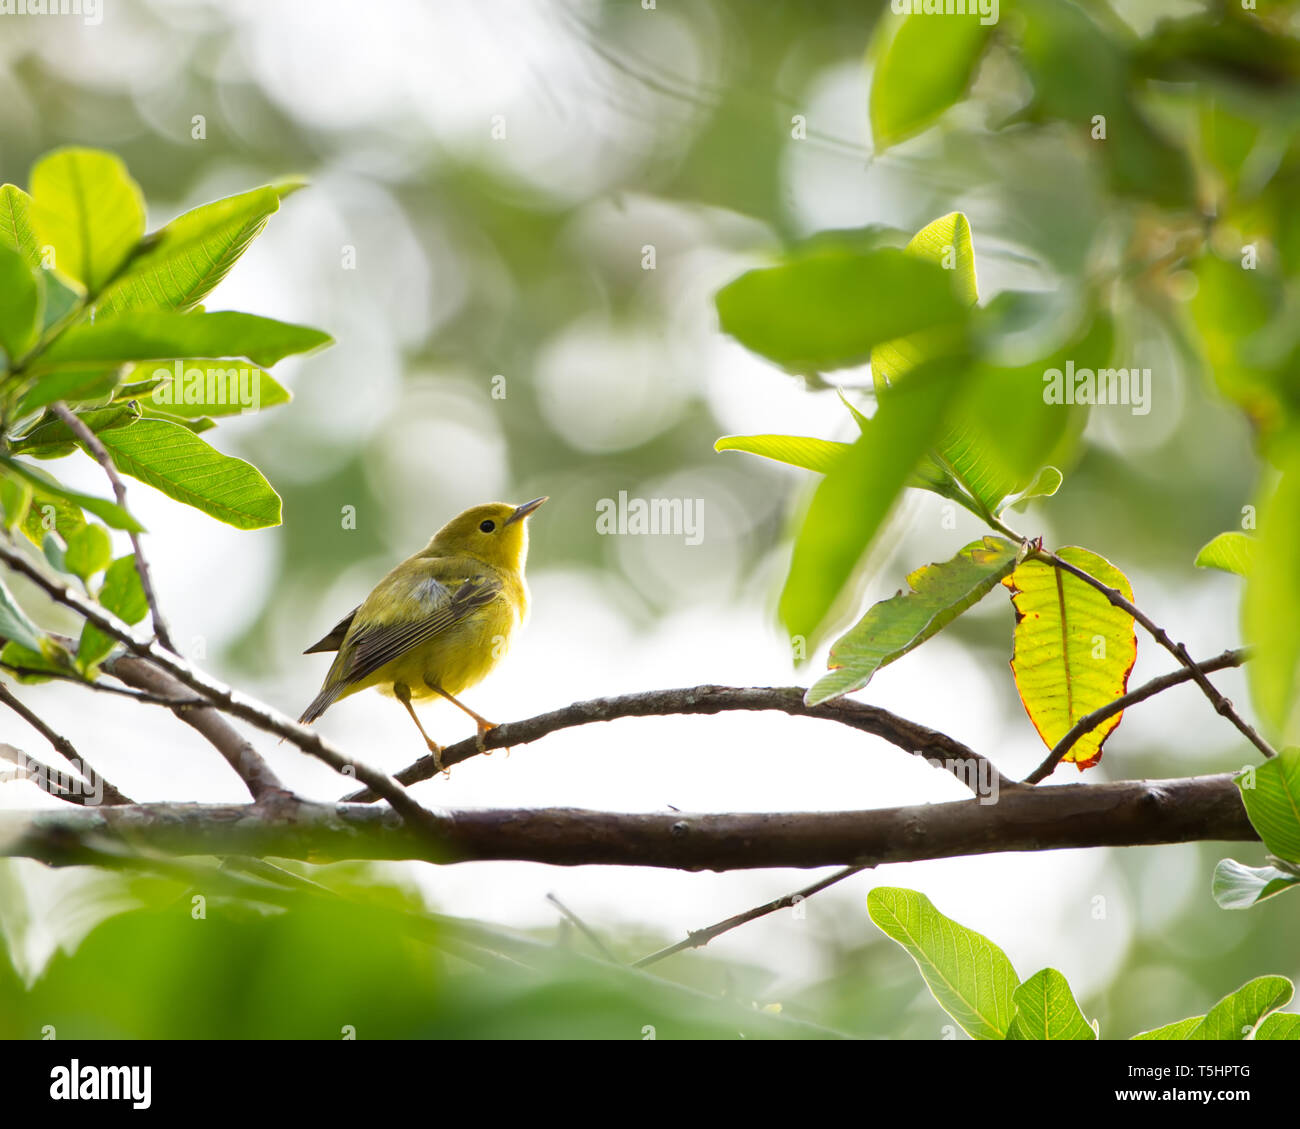 Yellow Warbler (Setophaga petechia) bird on a branch during migration on Panama - Stock Image